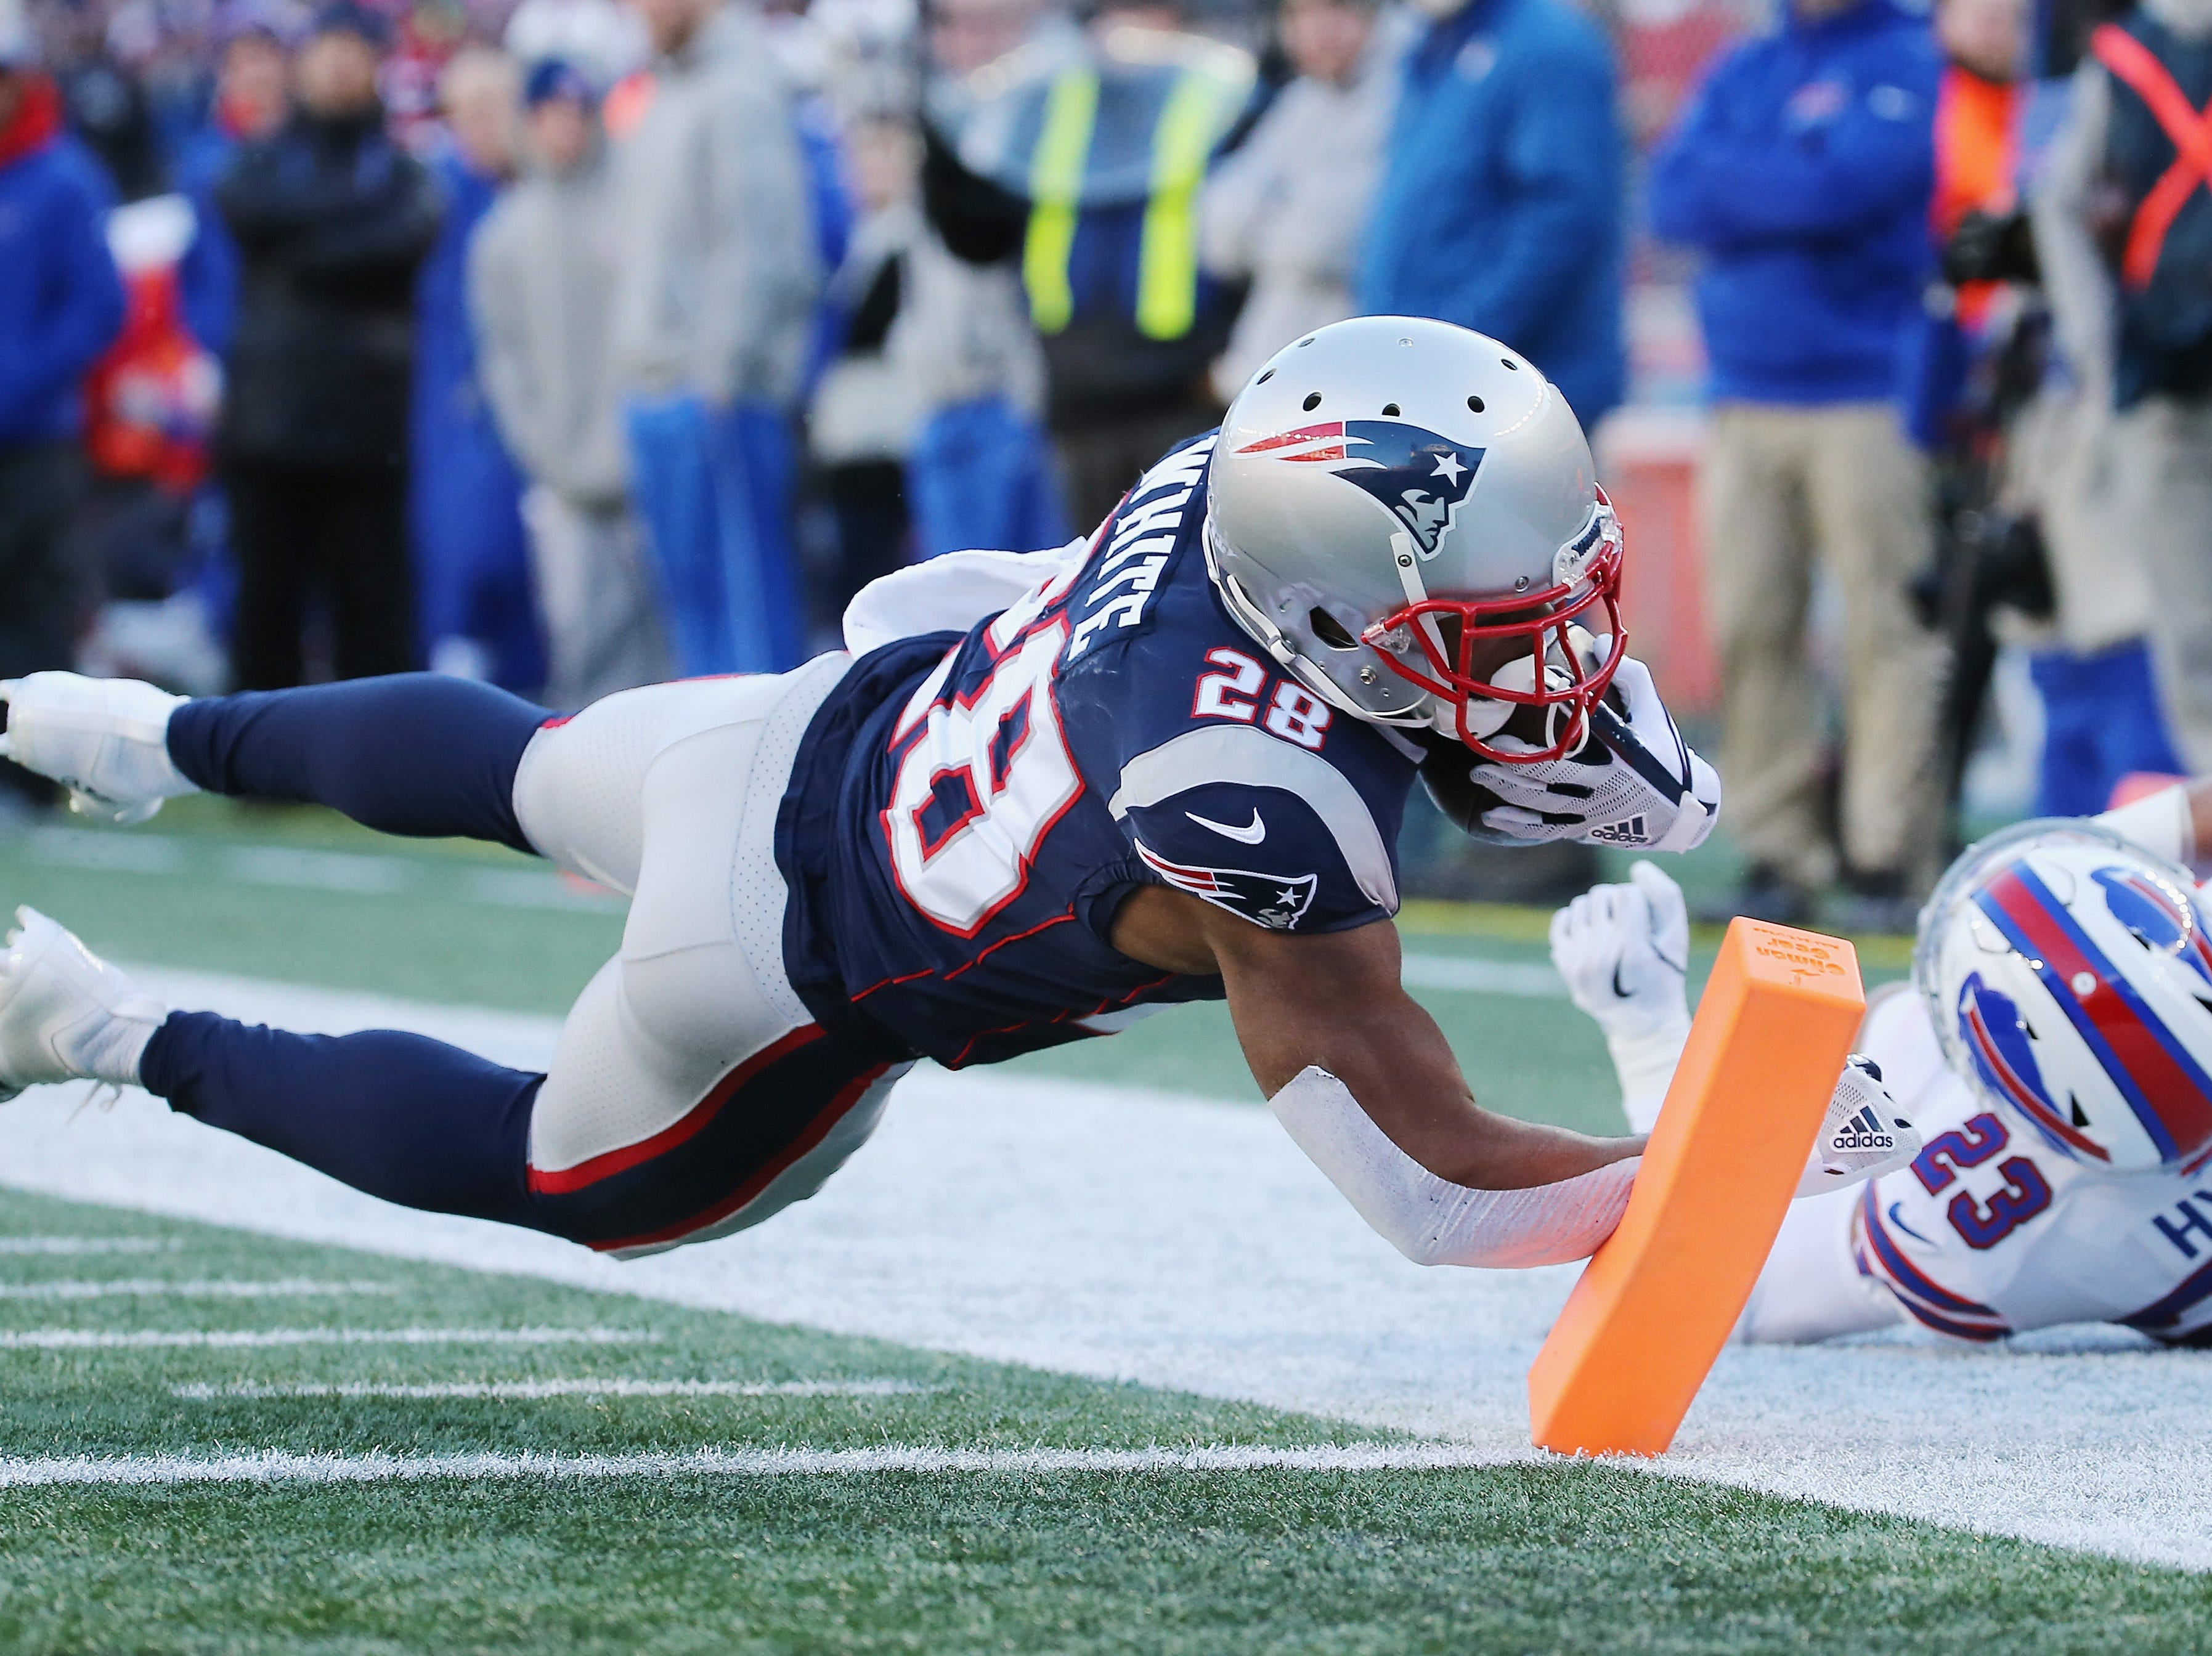 FOXBOROUGH, MA - DECEMBER 23:  James White #28 of the New England Patriots rushes for a 27-yard touchdown during the second quarter against the Buffalo Bills at Gillette Stadium on December 23, 2018 in Foxborough, Massachusetts.  (Photo by Jim Rogash/Getty Images)